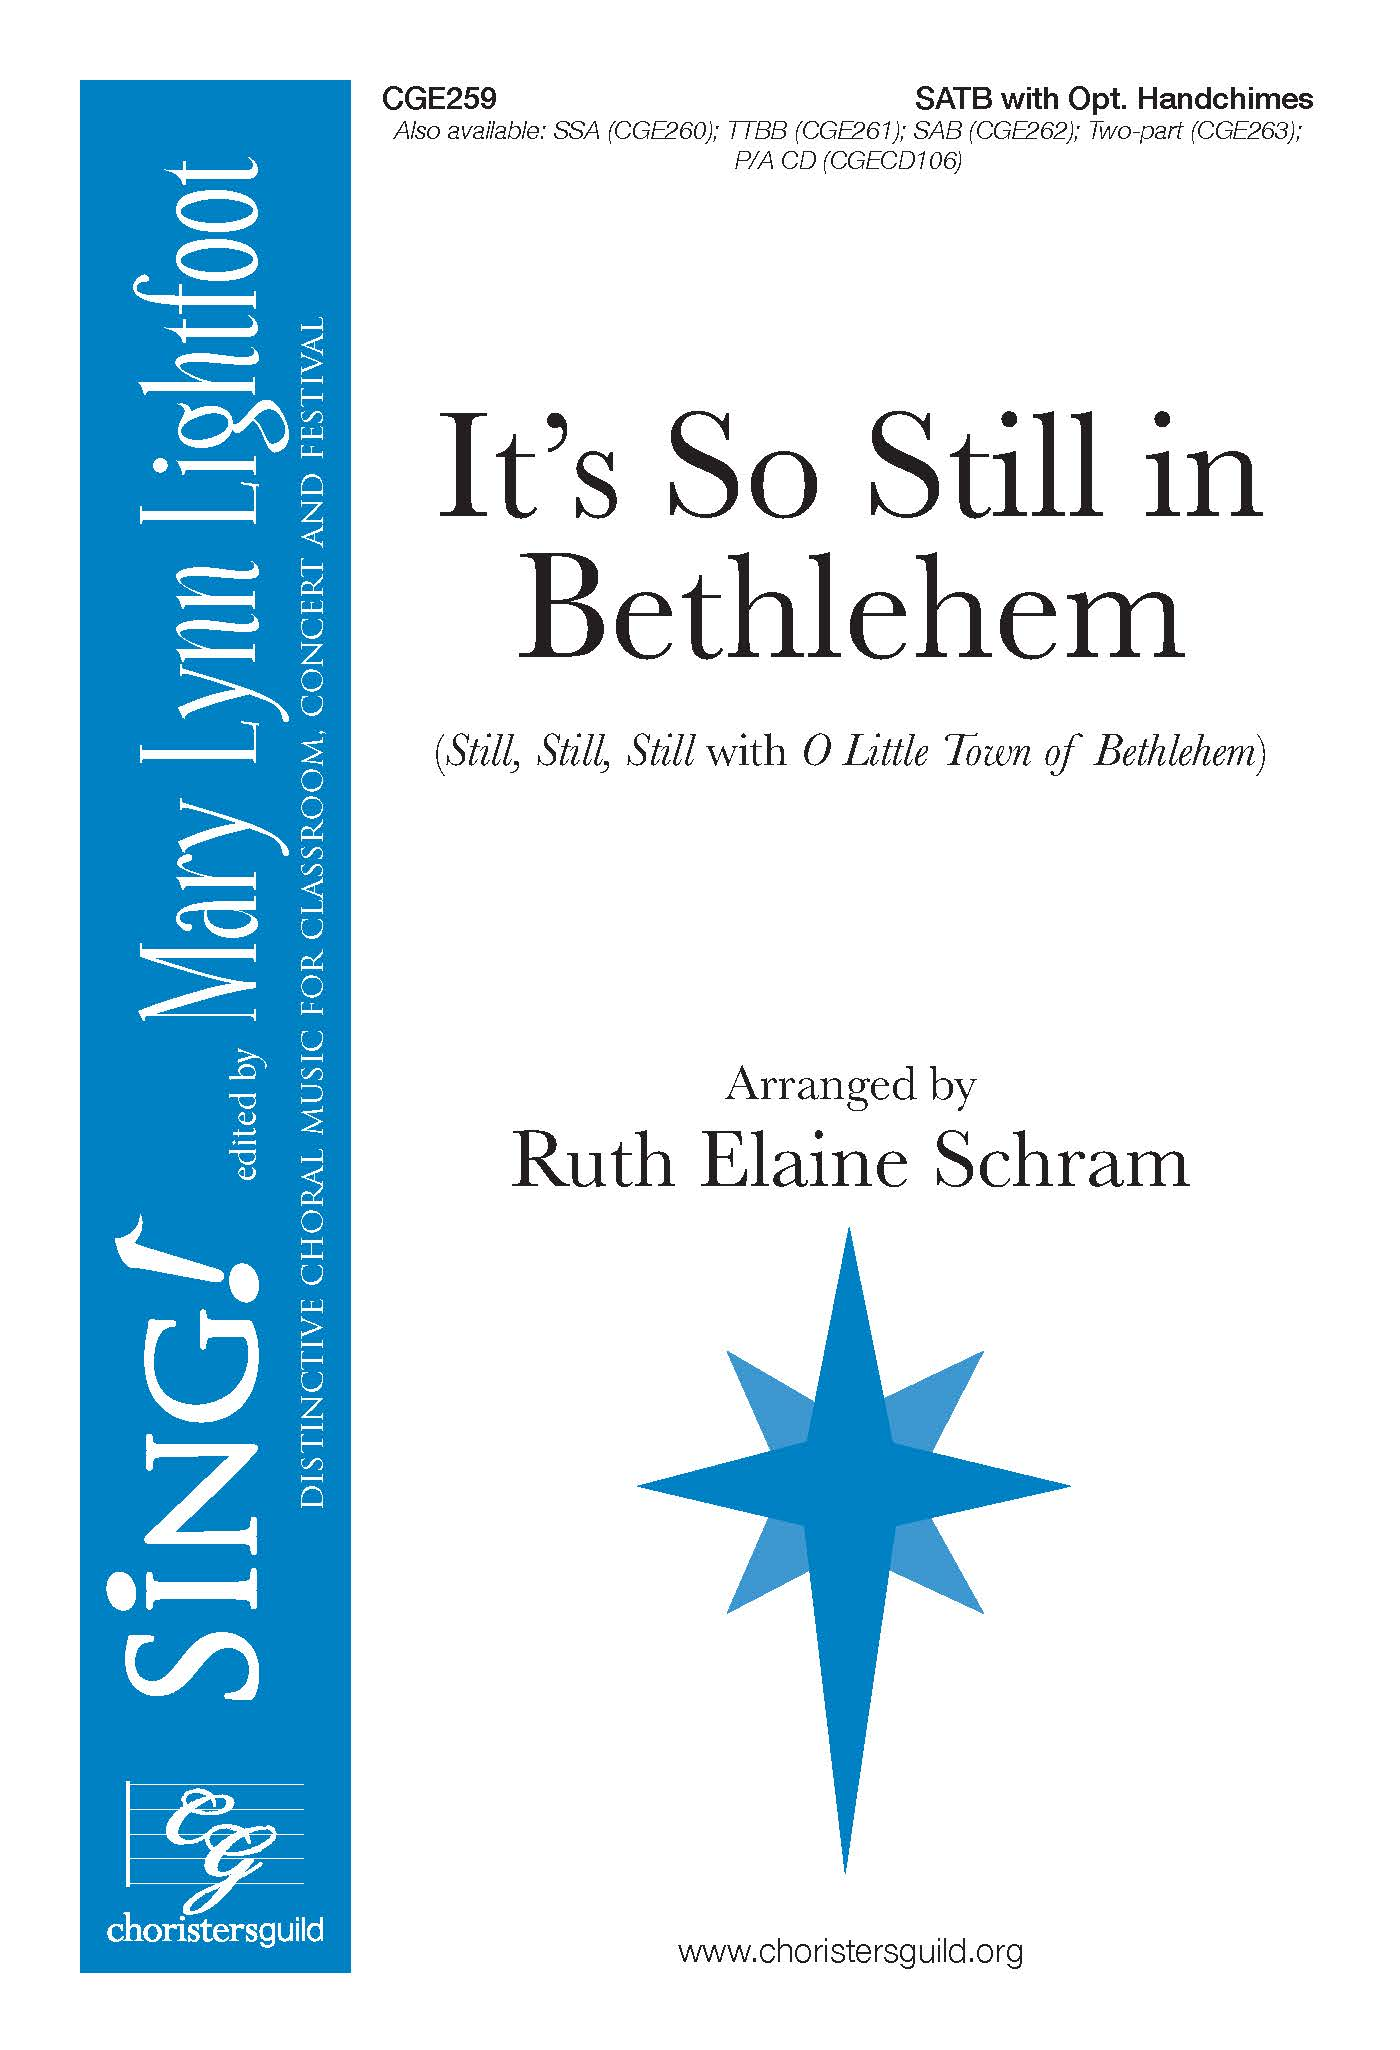 It's So Still in Bethlehem SATB